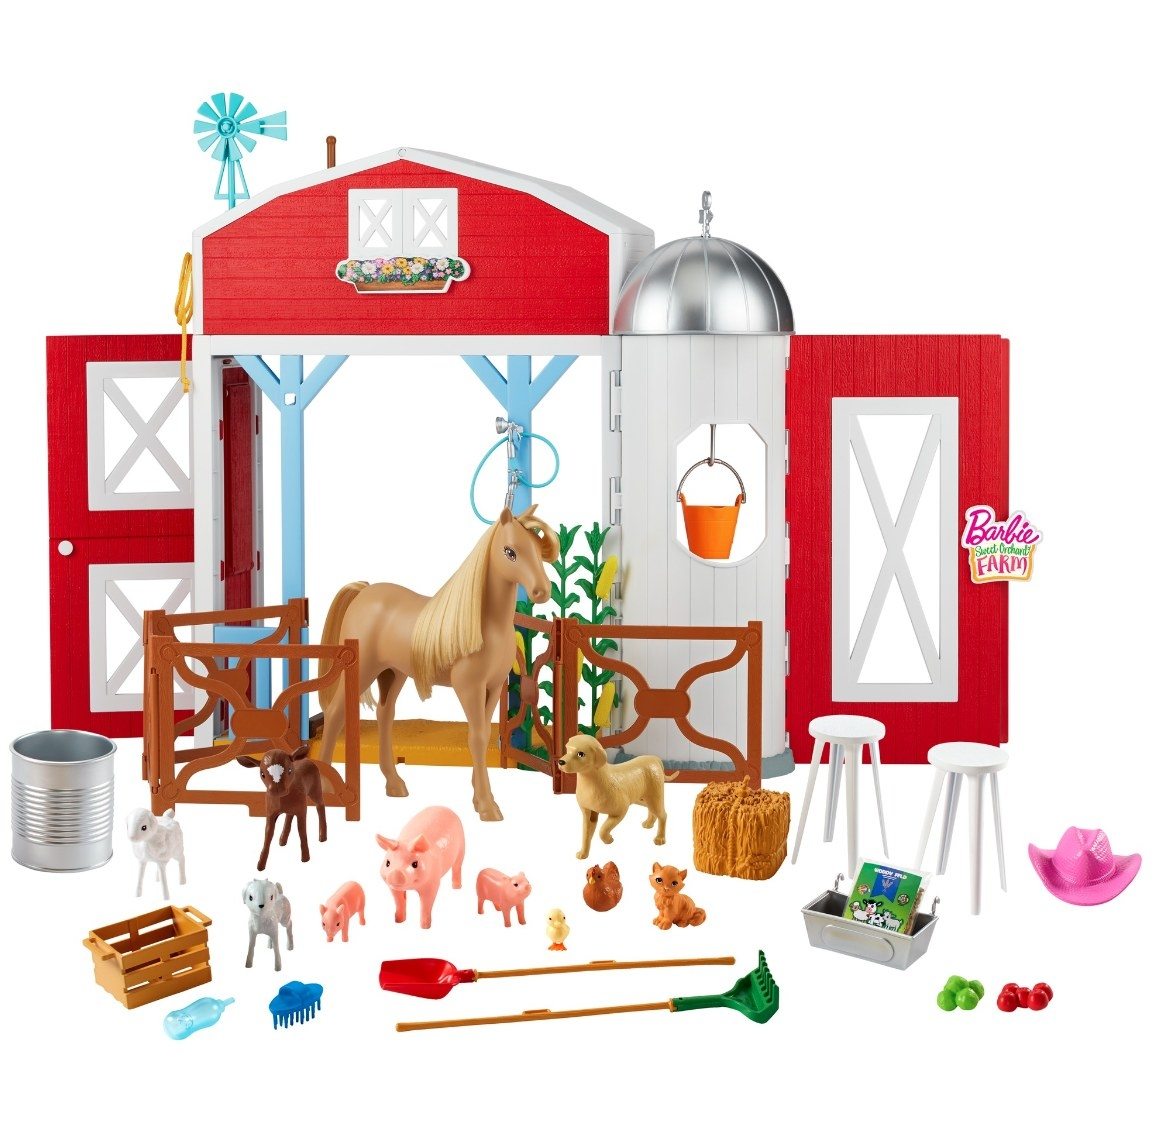 The Barbie farm playset with tons of animals and other accessories